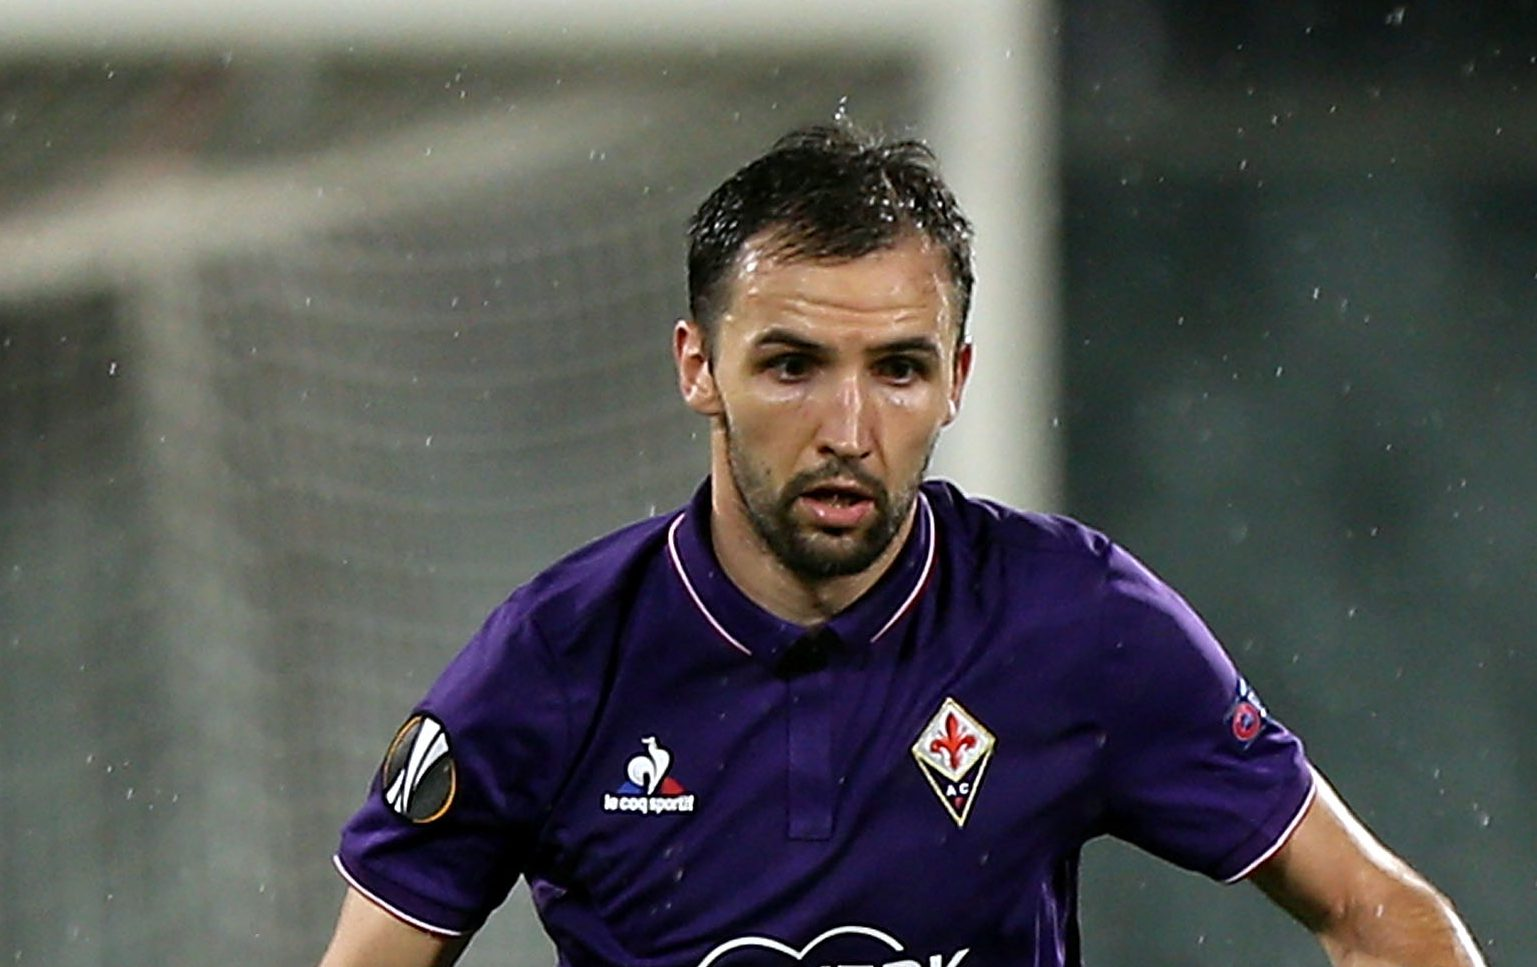 FLORENCE, ITALY - NOVEMBER 24: Milan Badelj of ACF Fiorentina in action during the UEFA Europa League match between ACF Fiorentina and PAOK FC at Stadio Artemio Franchi on November 24, 2016 in Florence, Italy. (Photo by Gabriele Maltinti/Getty Images)